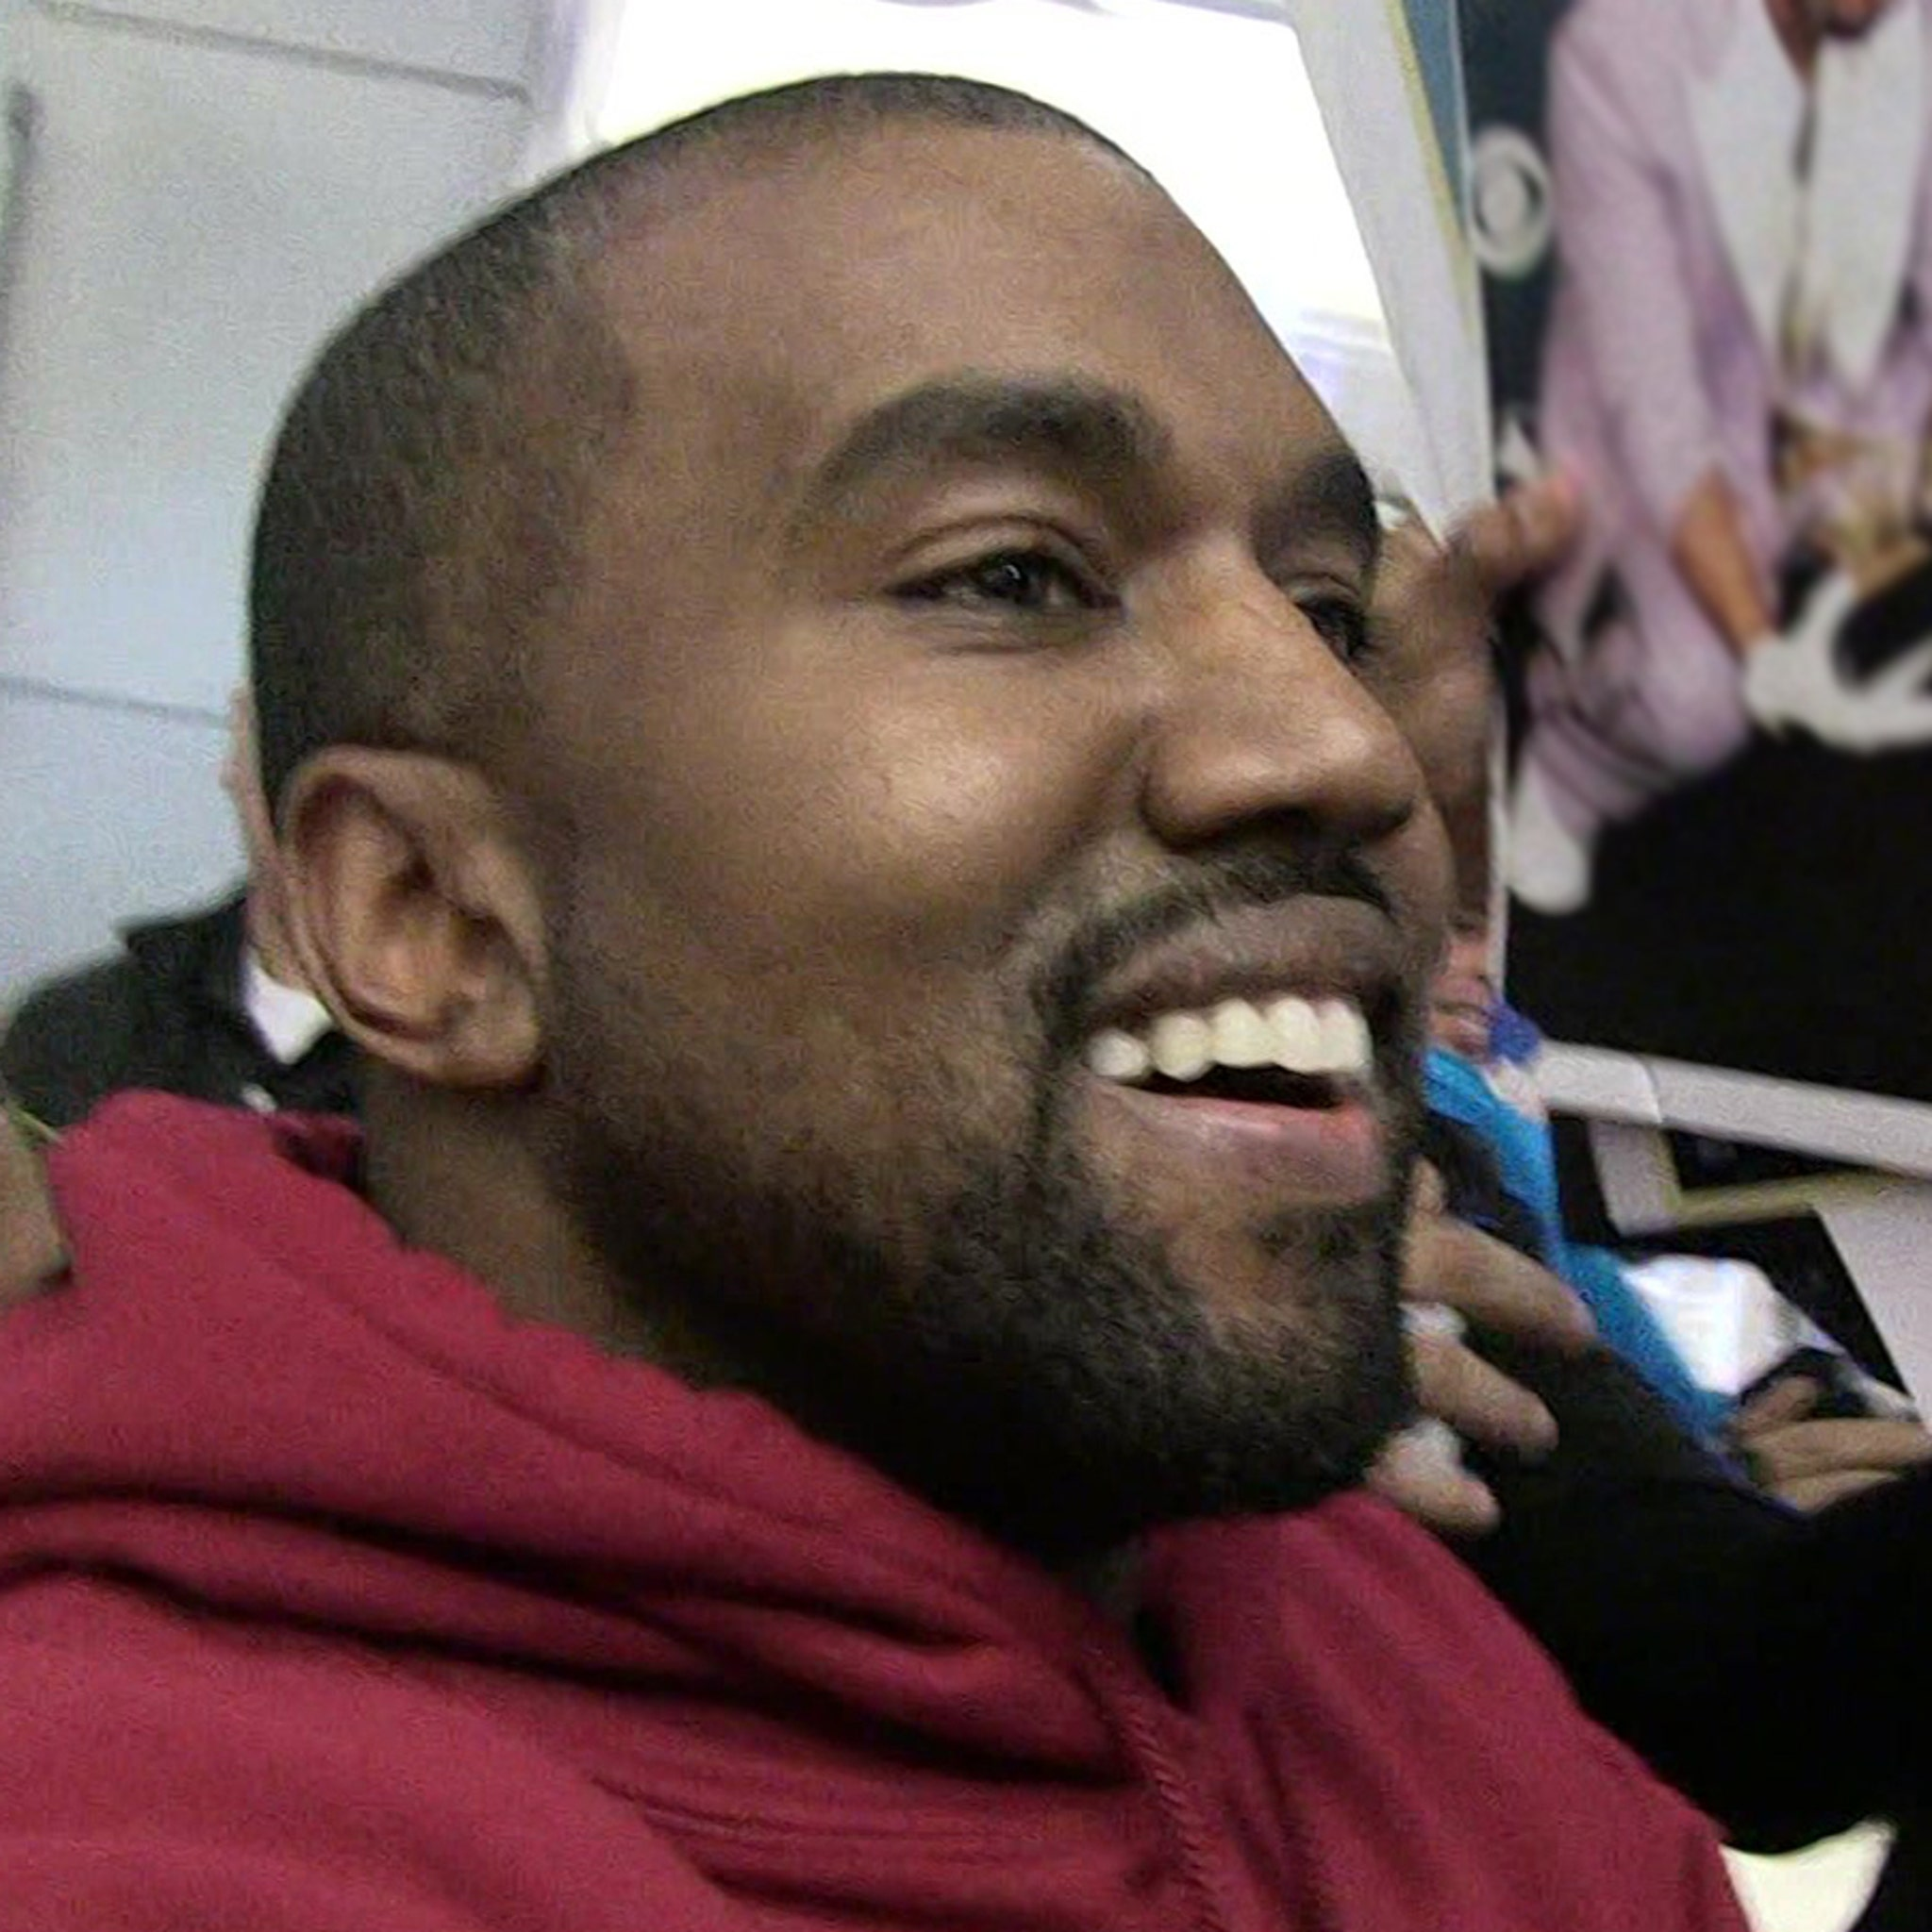 Kanye West's Upcoming Tour Will Break Concert Norms, Going Global